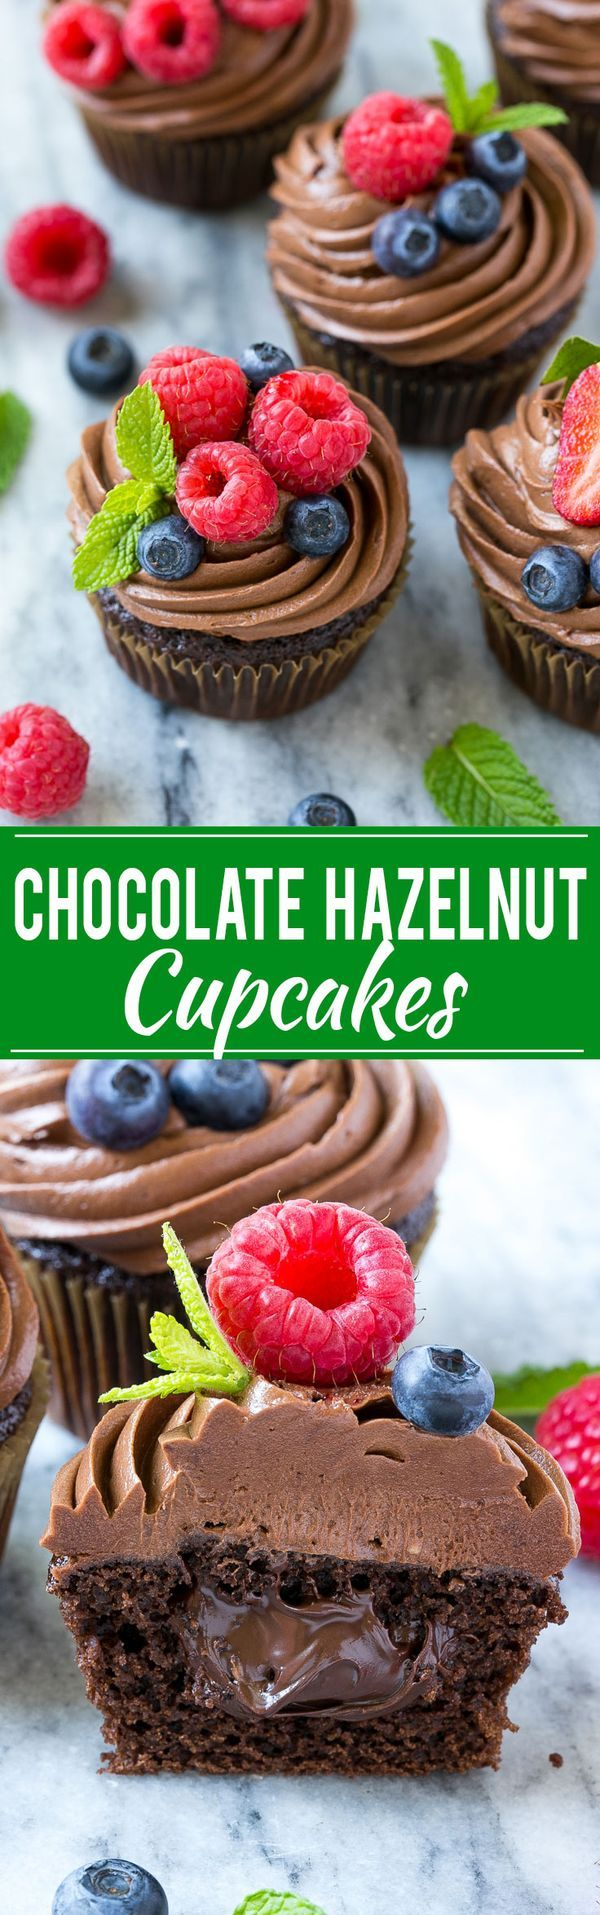 Chocolate Hazelnut Cupcakes | Posted By: DebbieNet.com